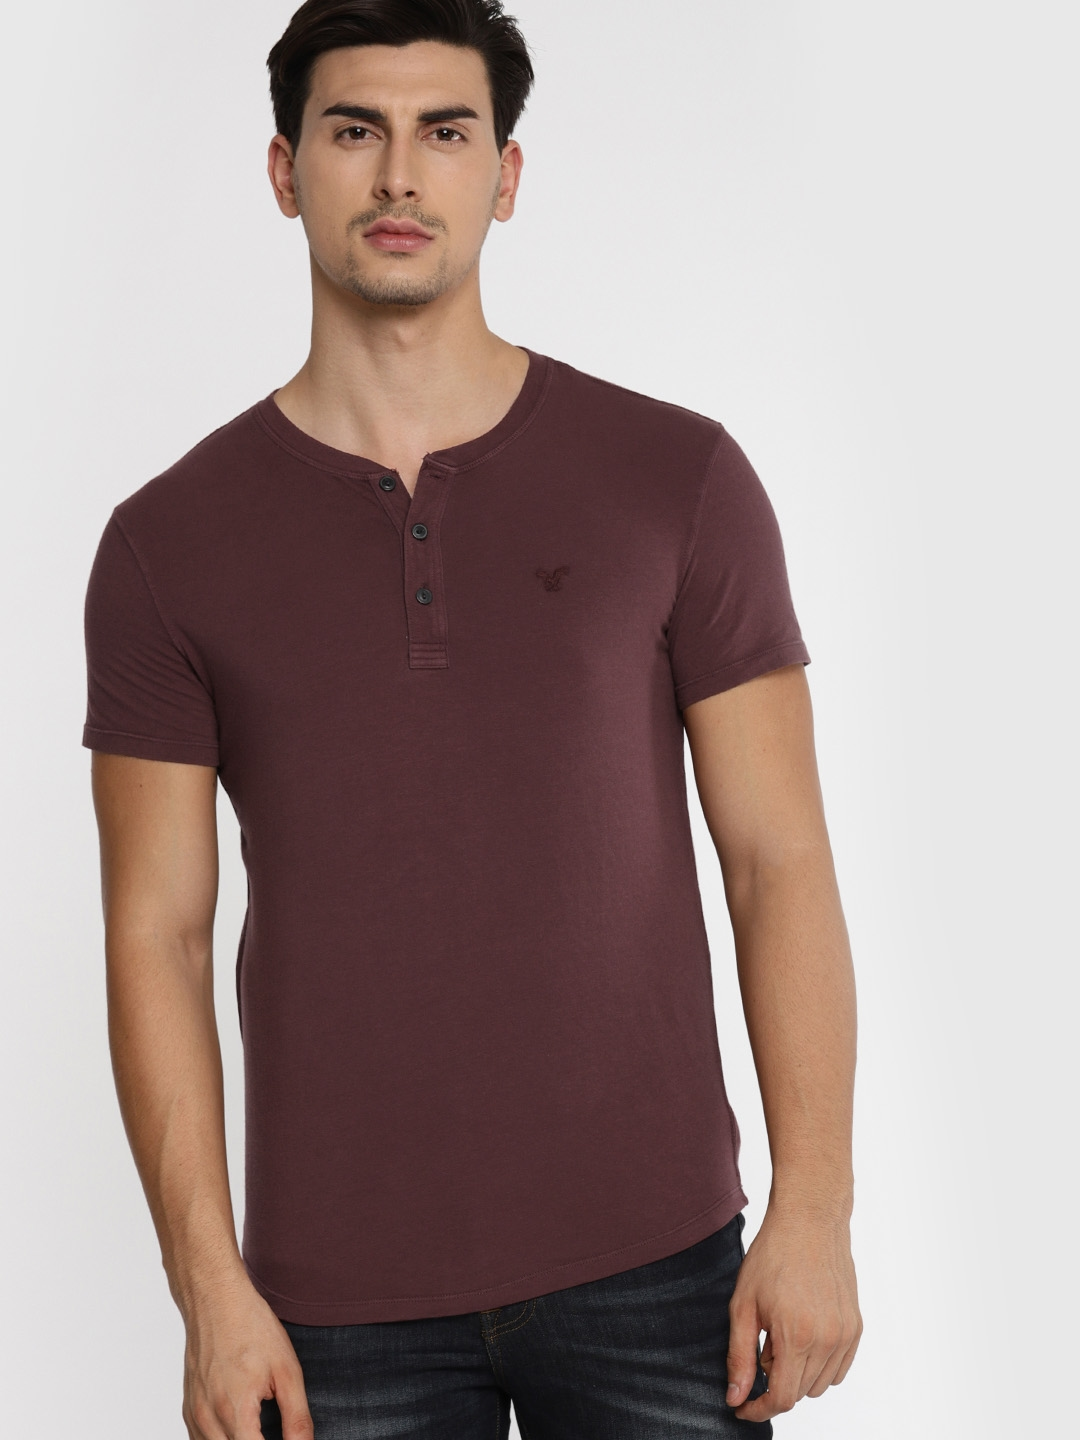 ec1ed078 Buy AMERICAN EAGLE OUTFITTERS Men Burgundy Solid Henley Neck T Shirt ...